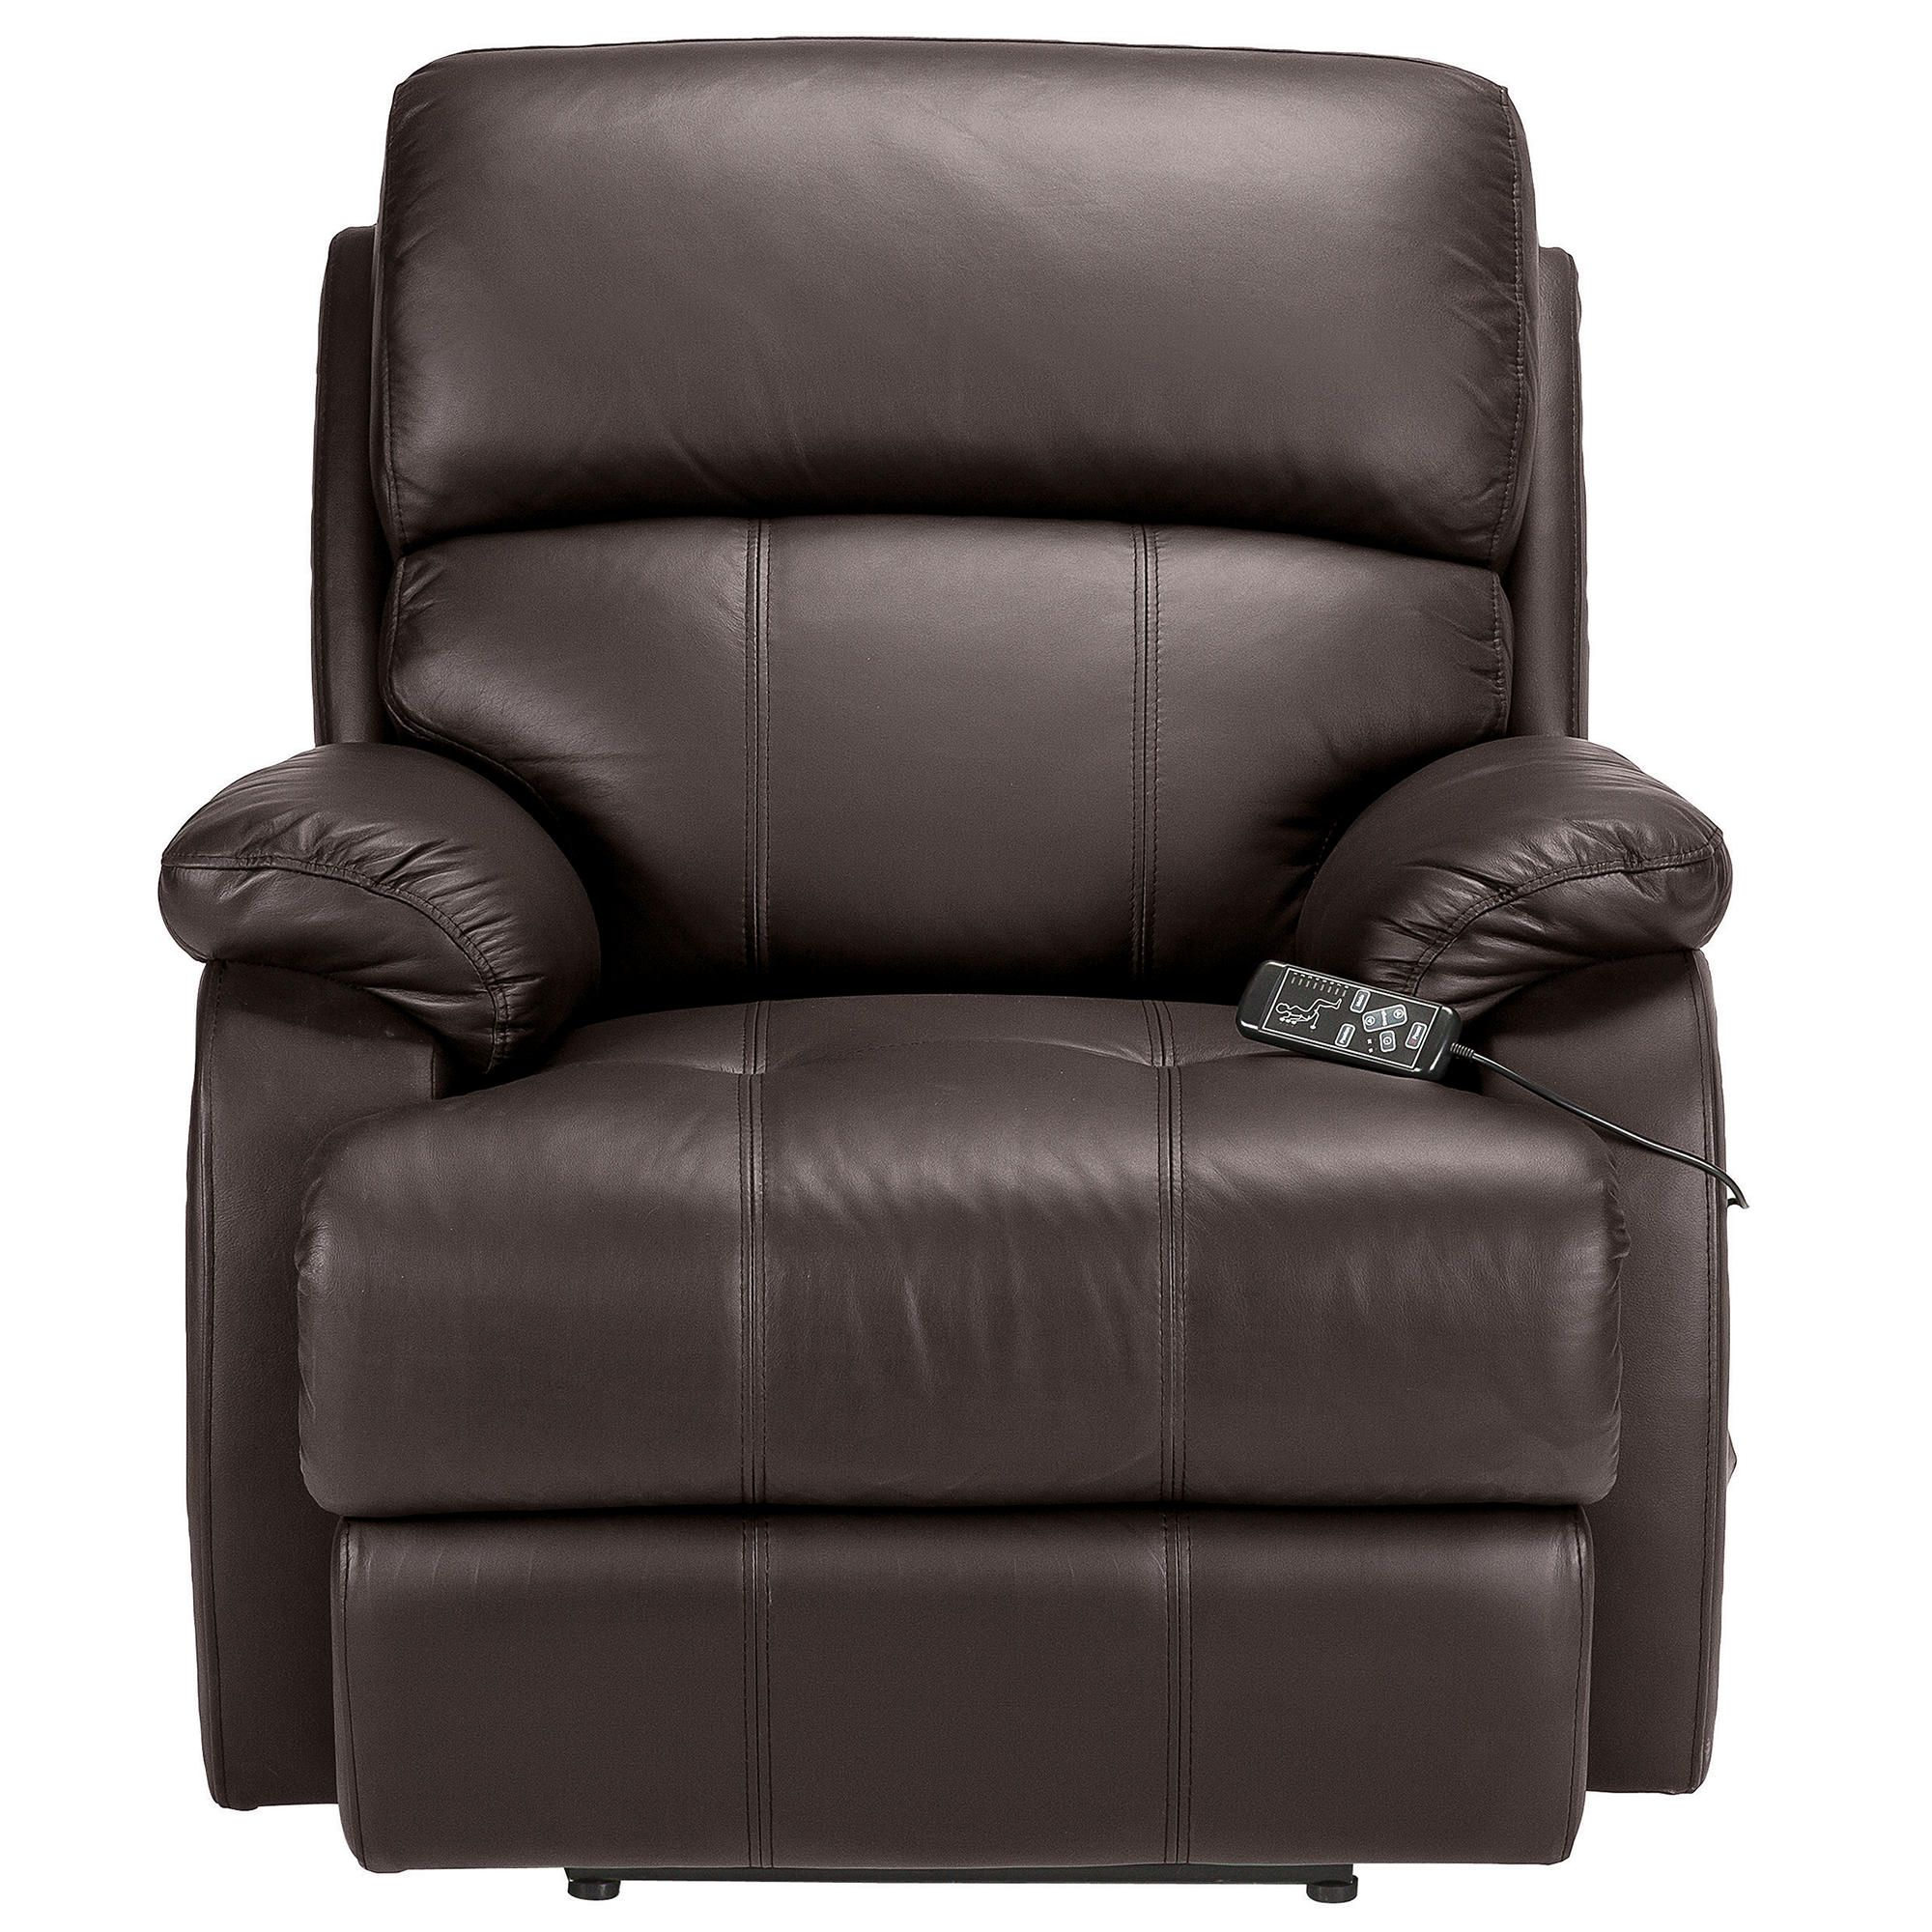 Massage Leather Recliner Chair Brown at Tescos Direct